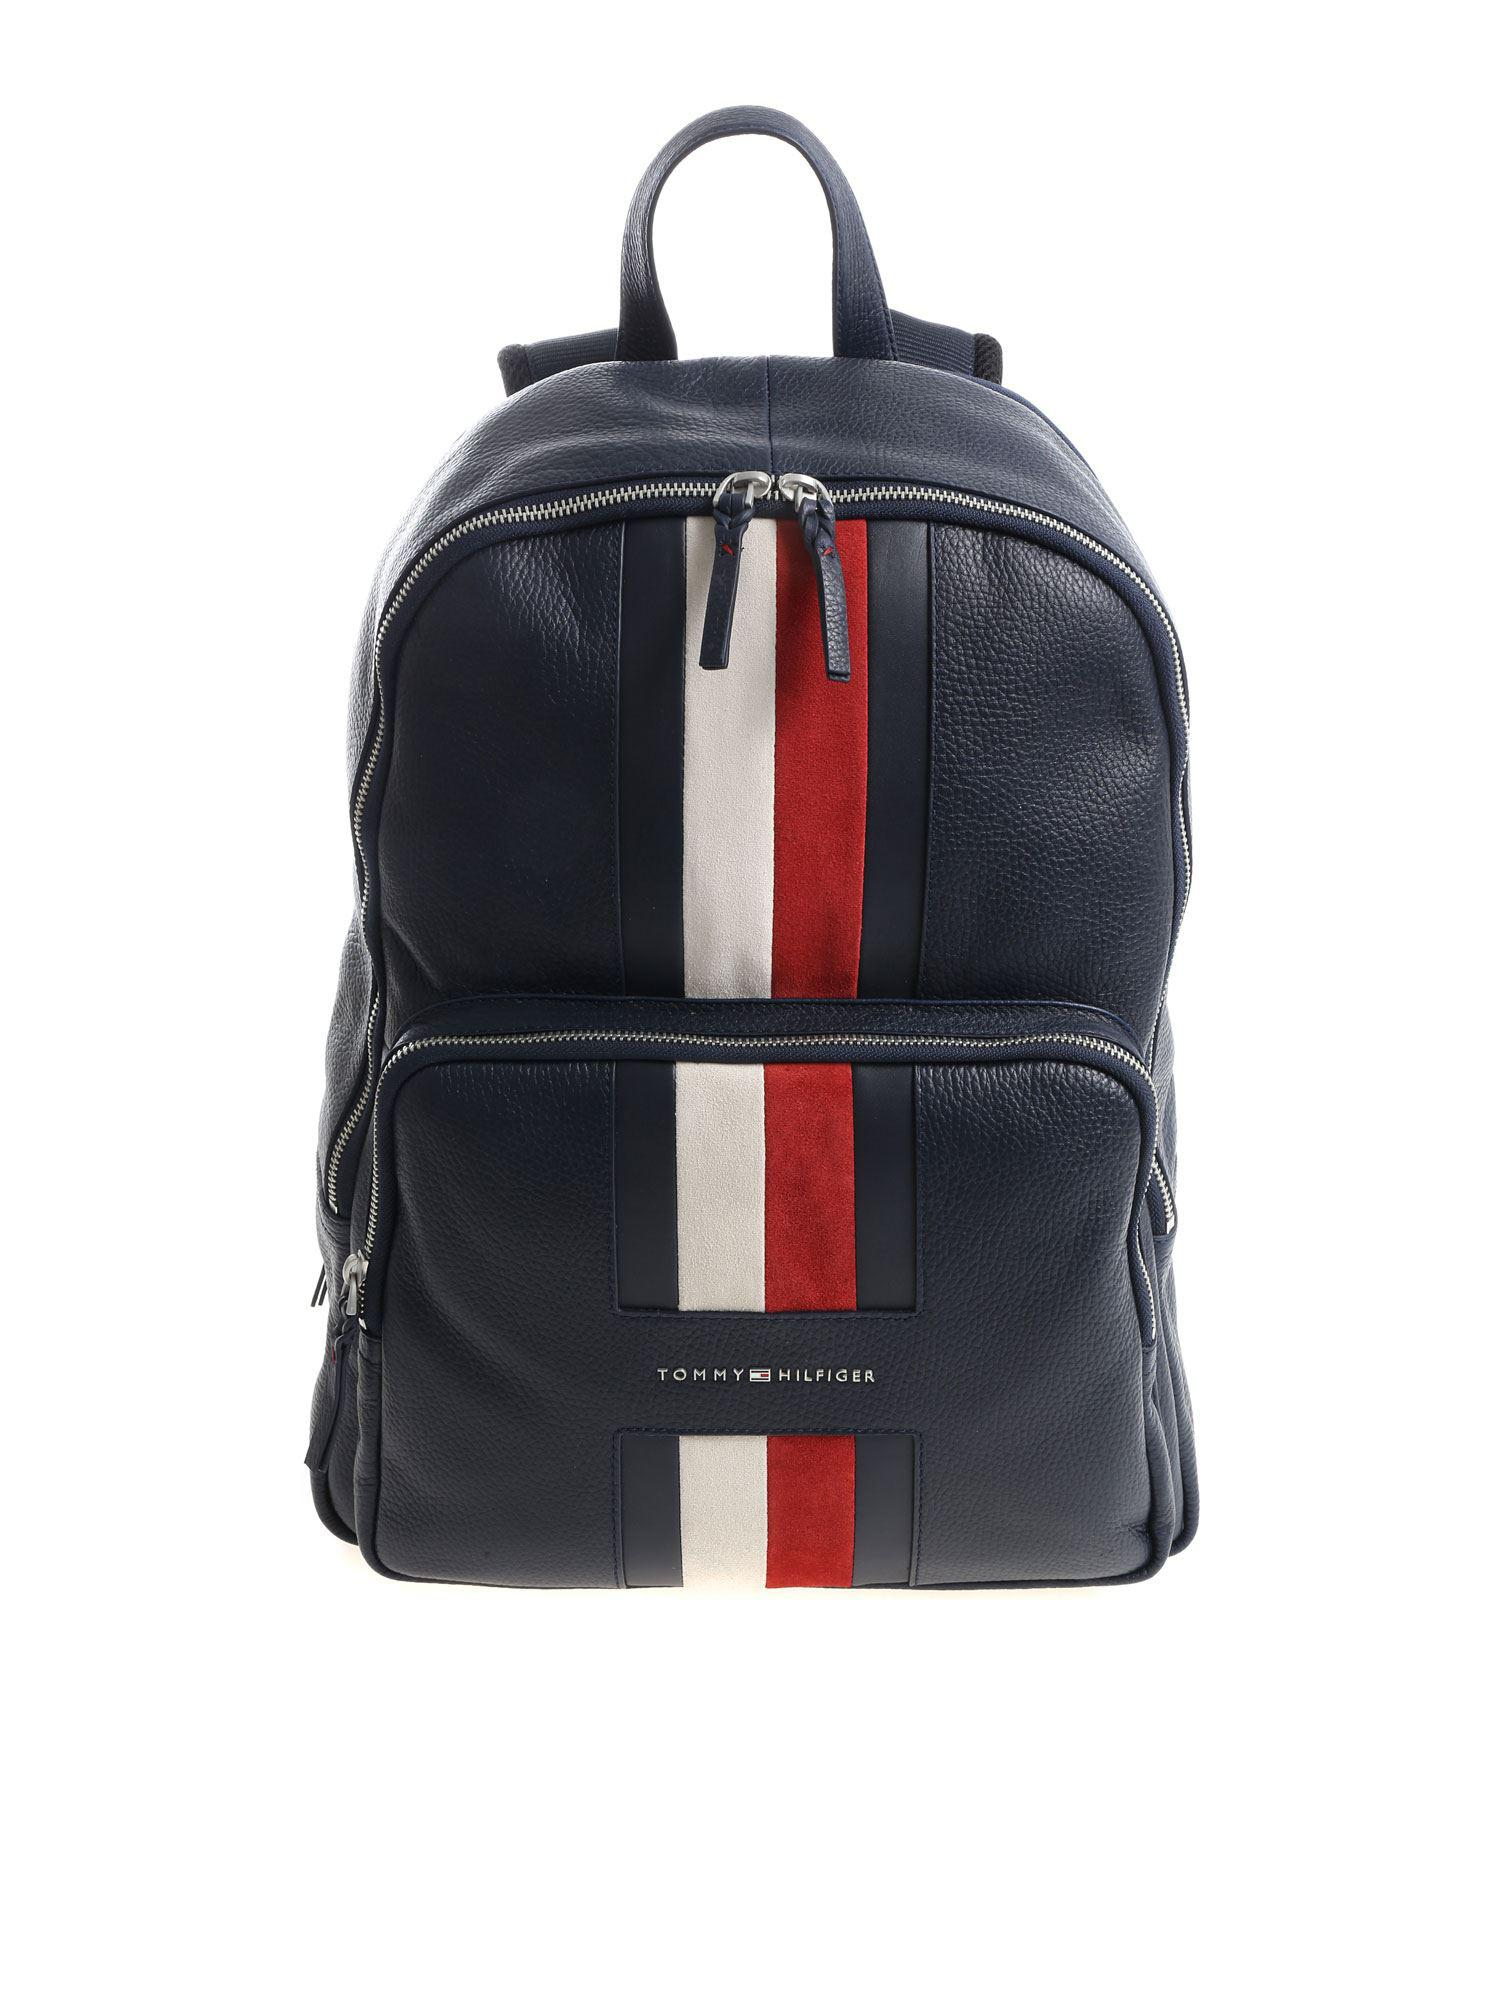 76788115e7a Tommy Hilfiger - Blue Leather Backpack With Logo - Lyst. View fullscreen